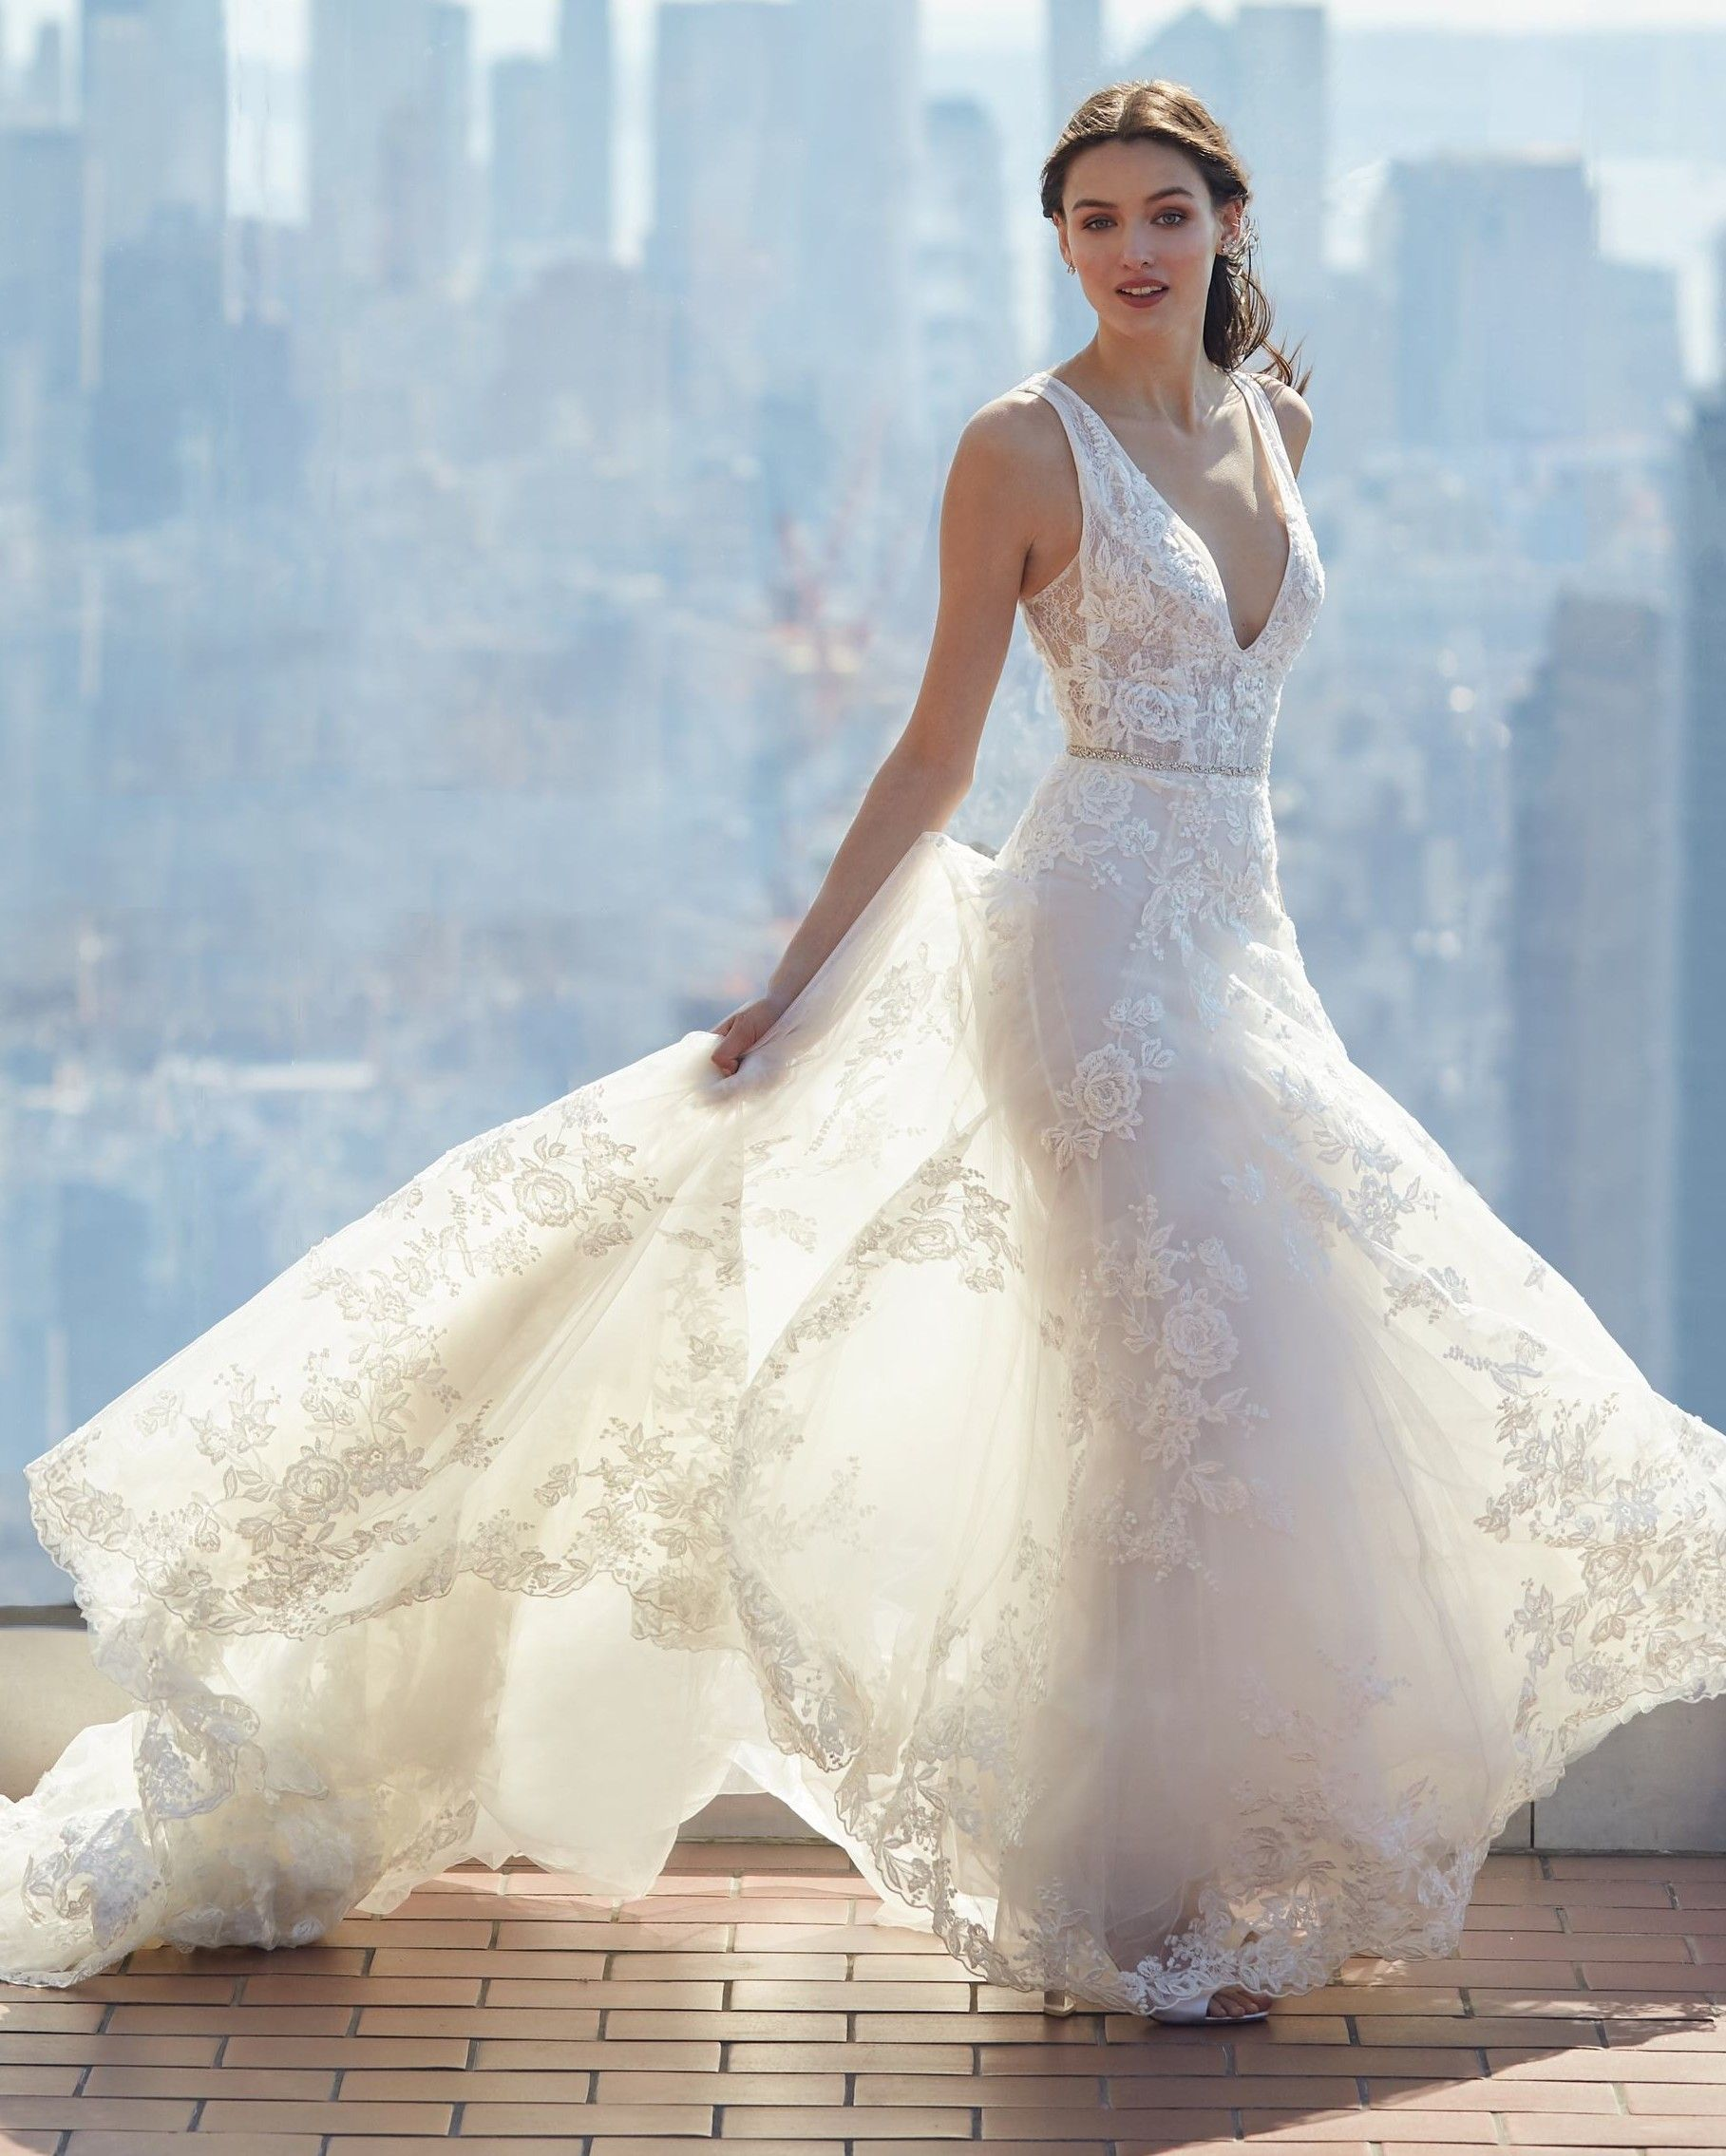 Bliss By Monique Lhuillier Spring 2020 Wedding Dress Collection